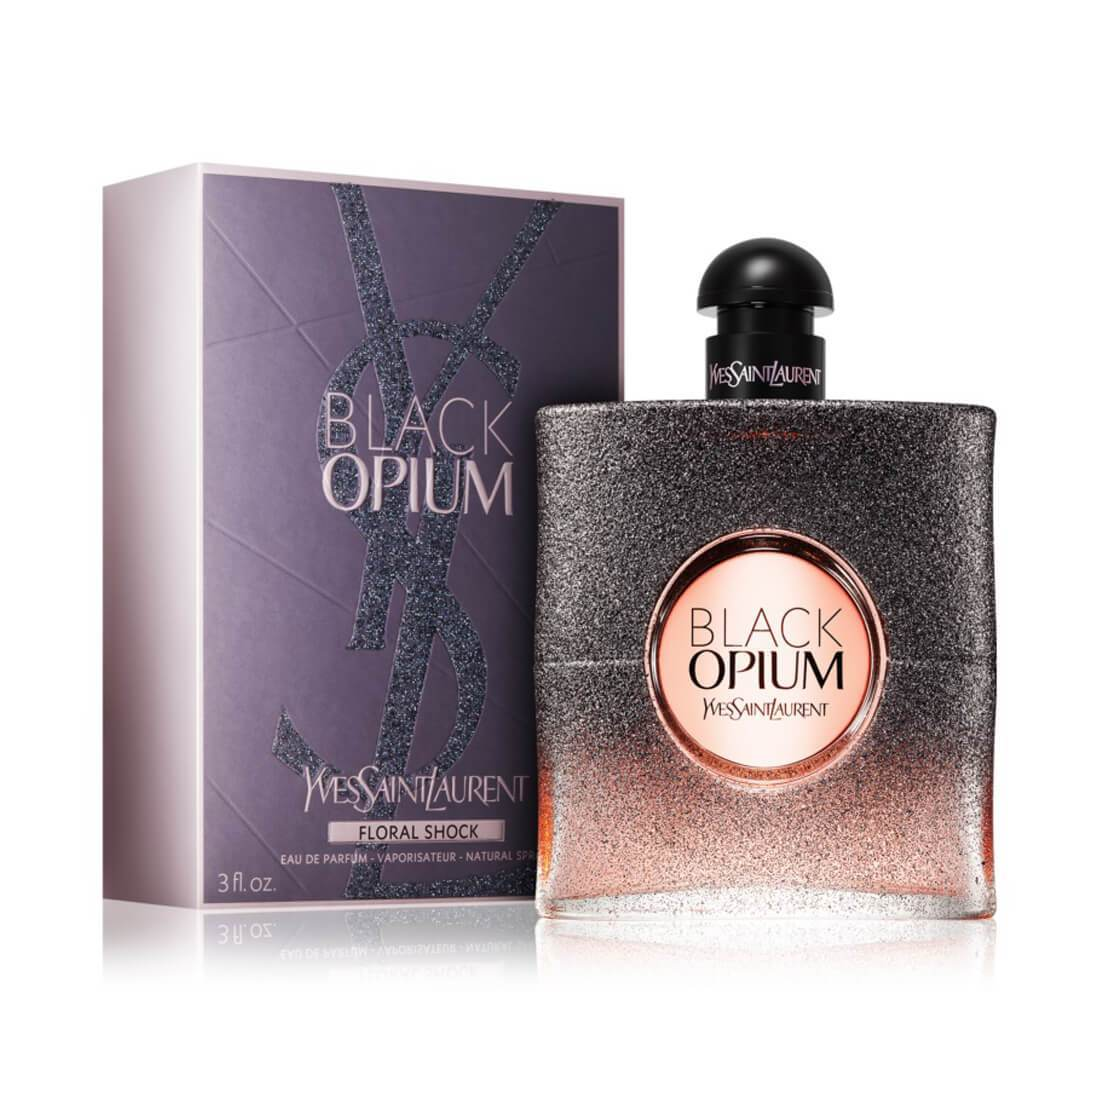 Yves Saint Laurent Black Opium Floral Shock EDP Perfume For Women - 90ml